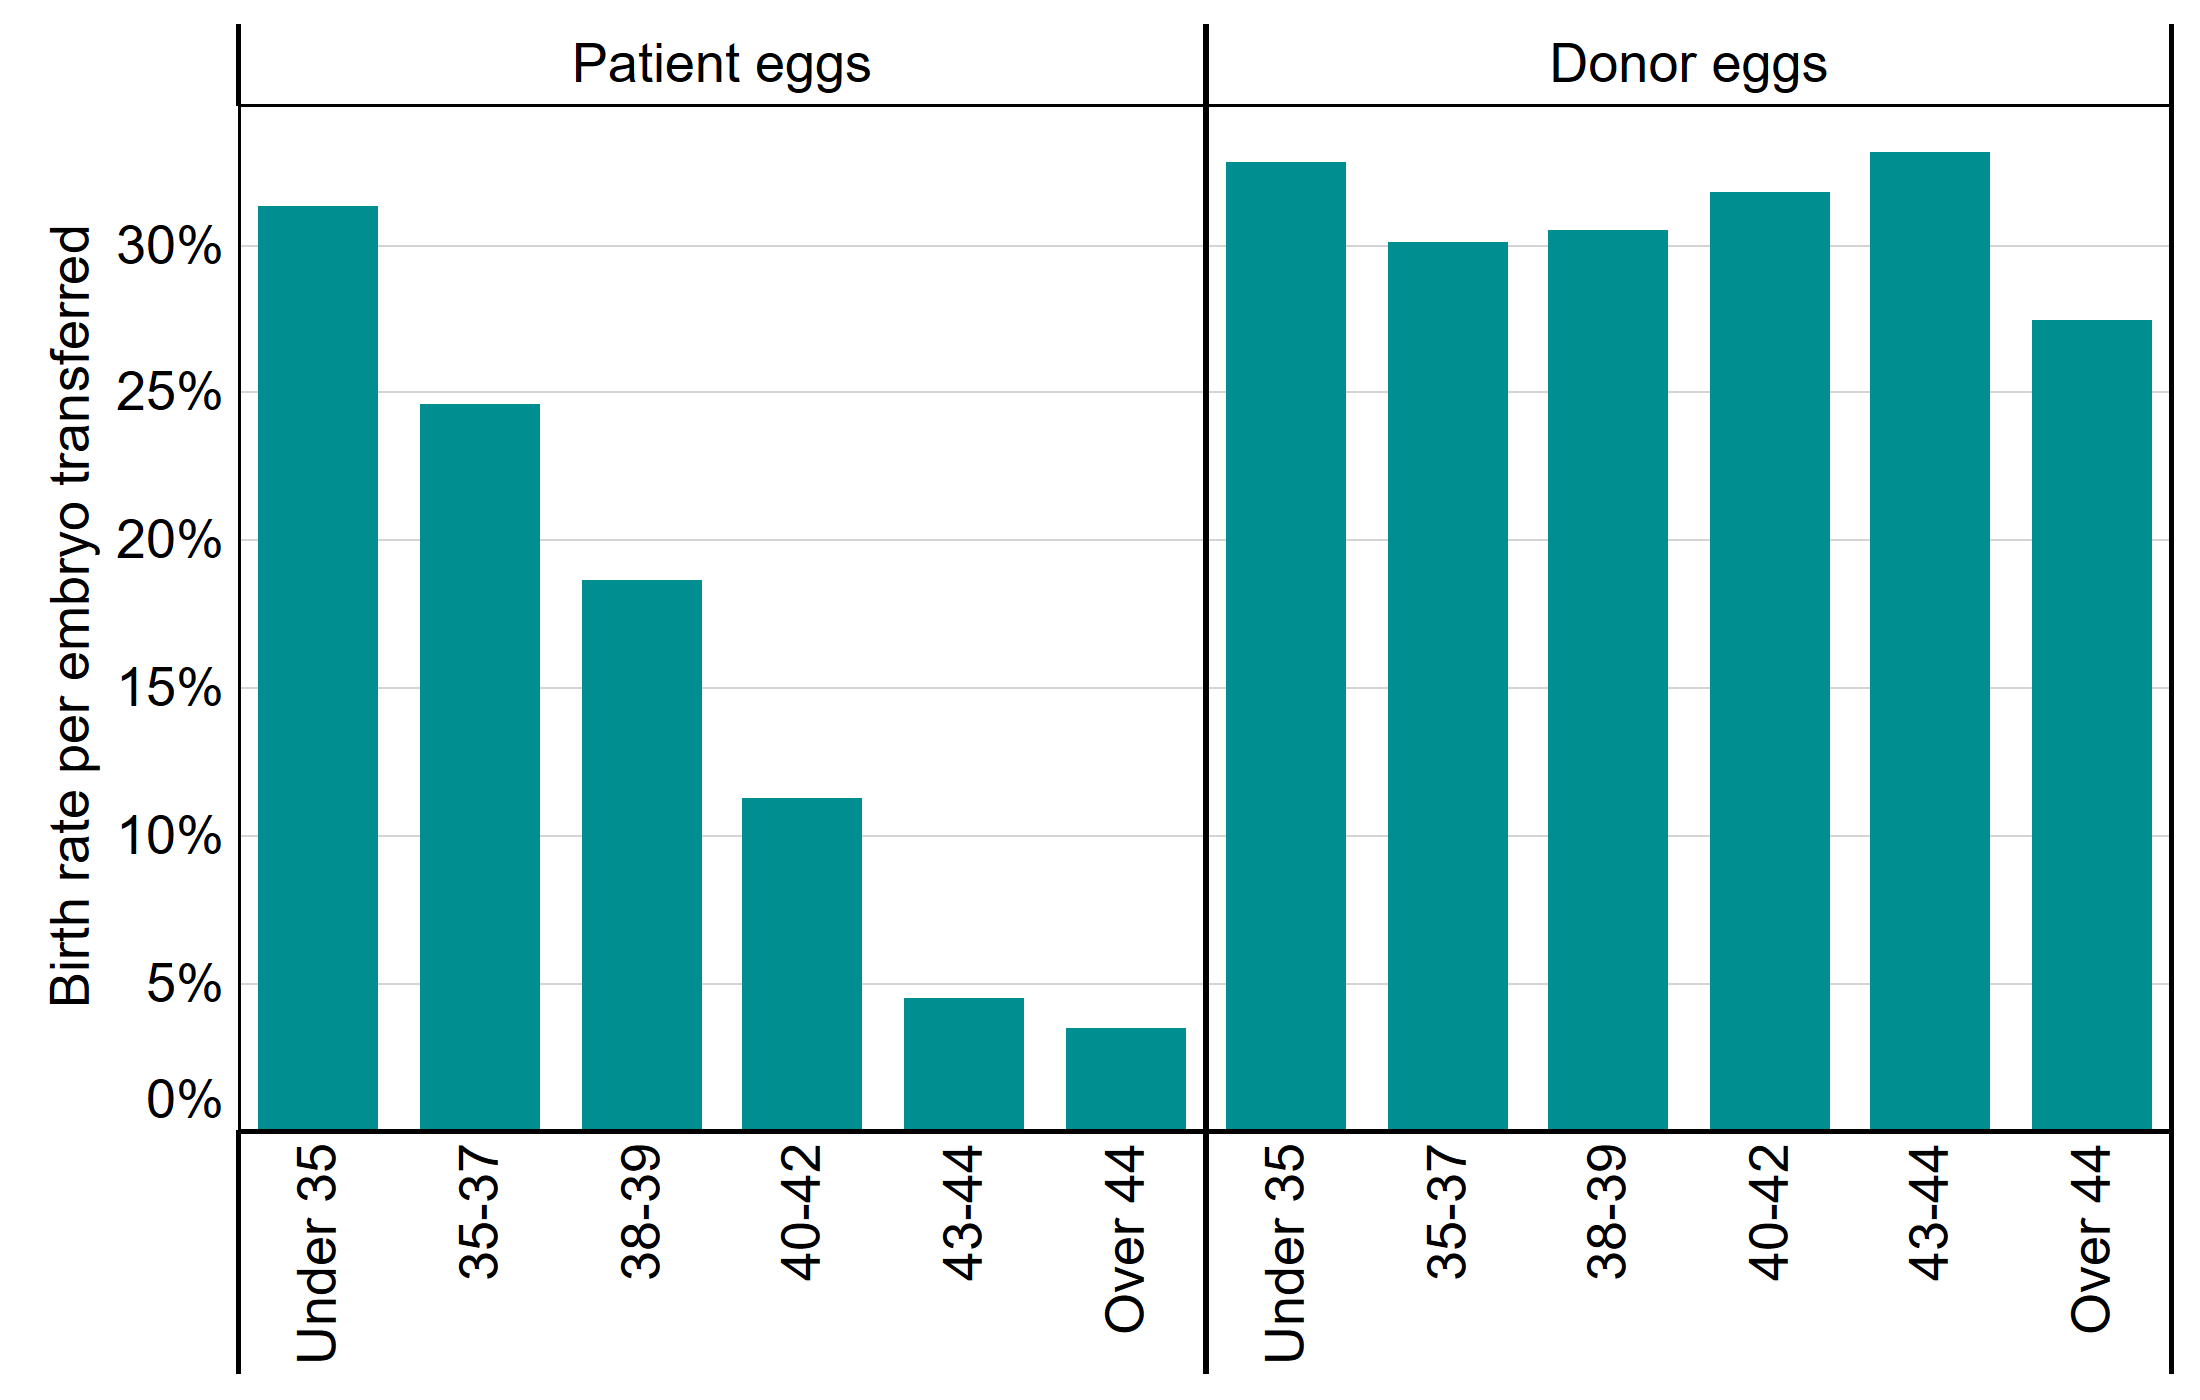 This bar chart shows the live birth rate per embryo transferred by patient age bands and source of egg (patient eggs or donor eggs). This chart shows that when using patient eggs, live birth rates per embryo transferred decrease with age from over 30% for patients under 35 to below 5% for patients 43 and over. When using donor eggs live birth rates per embryo transferred are similar for all age groups and remains above 25% per embryo transferred.